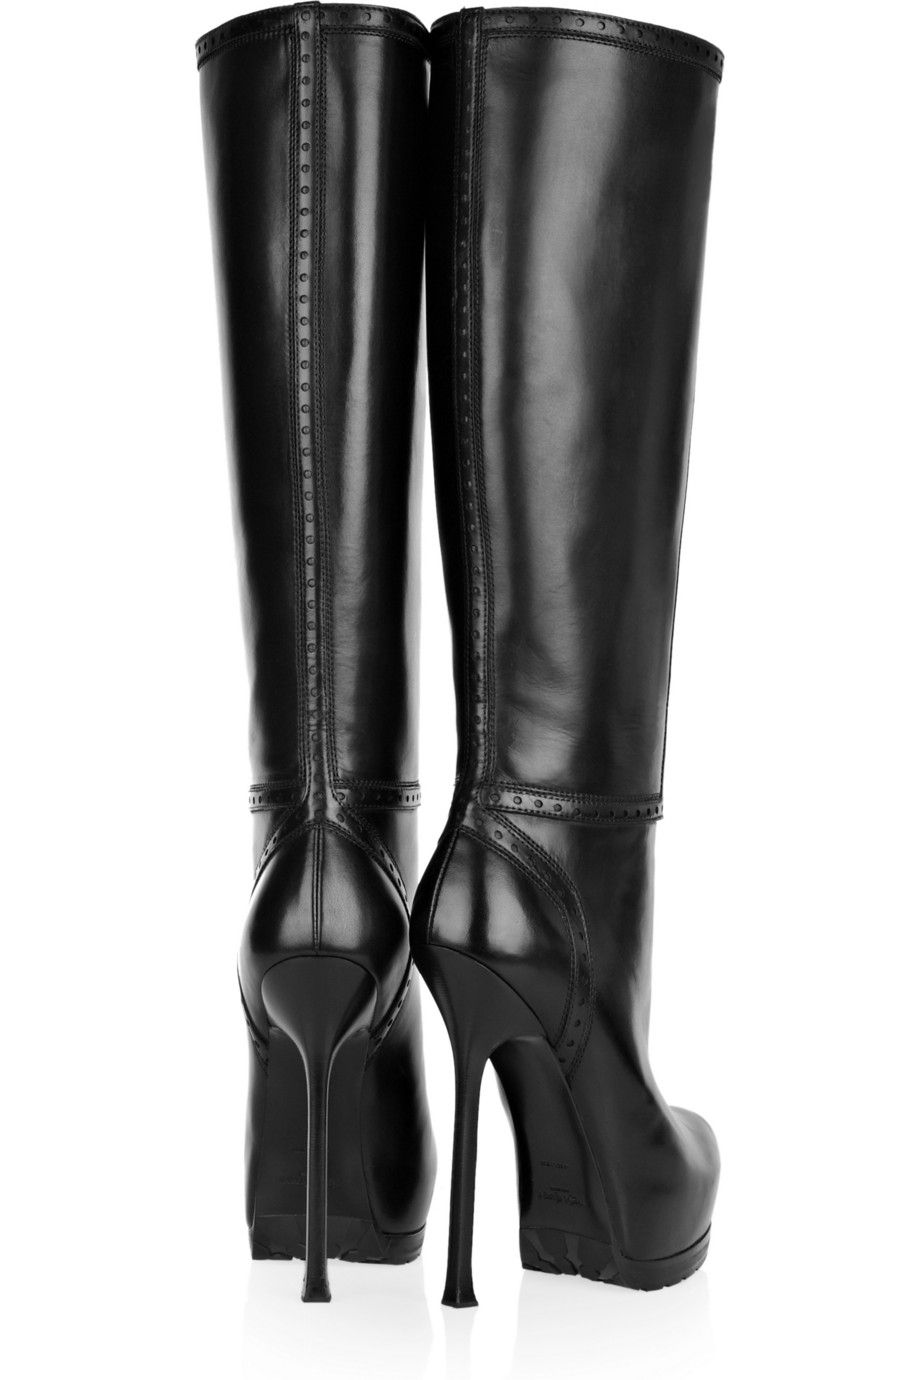 factory outlet free shipping great deals Yves Saint Laurent Platform Leather Knee-High Boots low shipping fee for sale cheap price discount authentic buy cheap 2014 newest aC6TWAxQhS